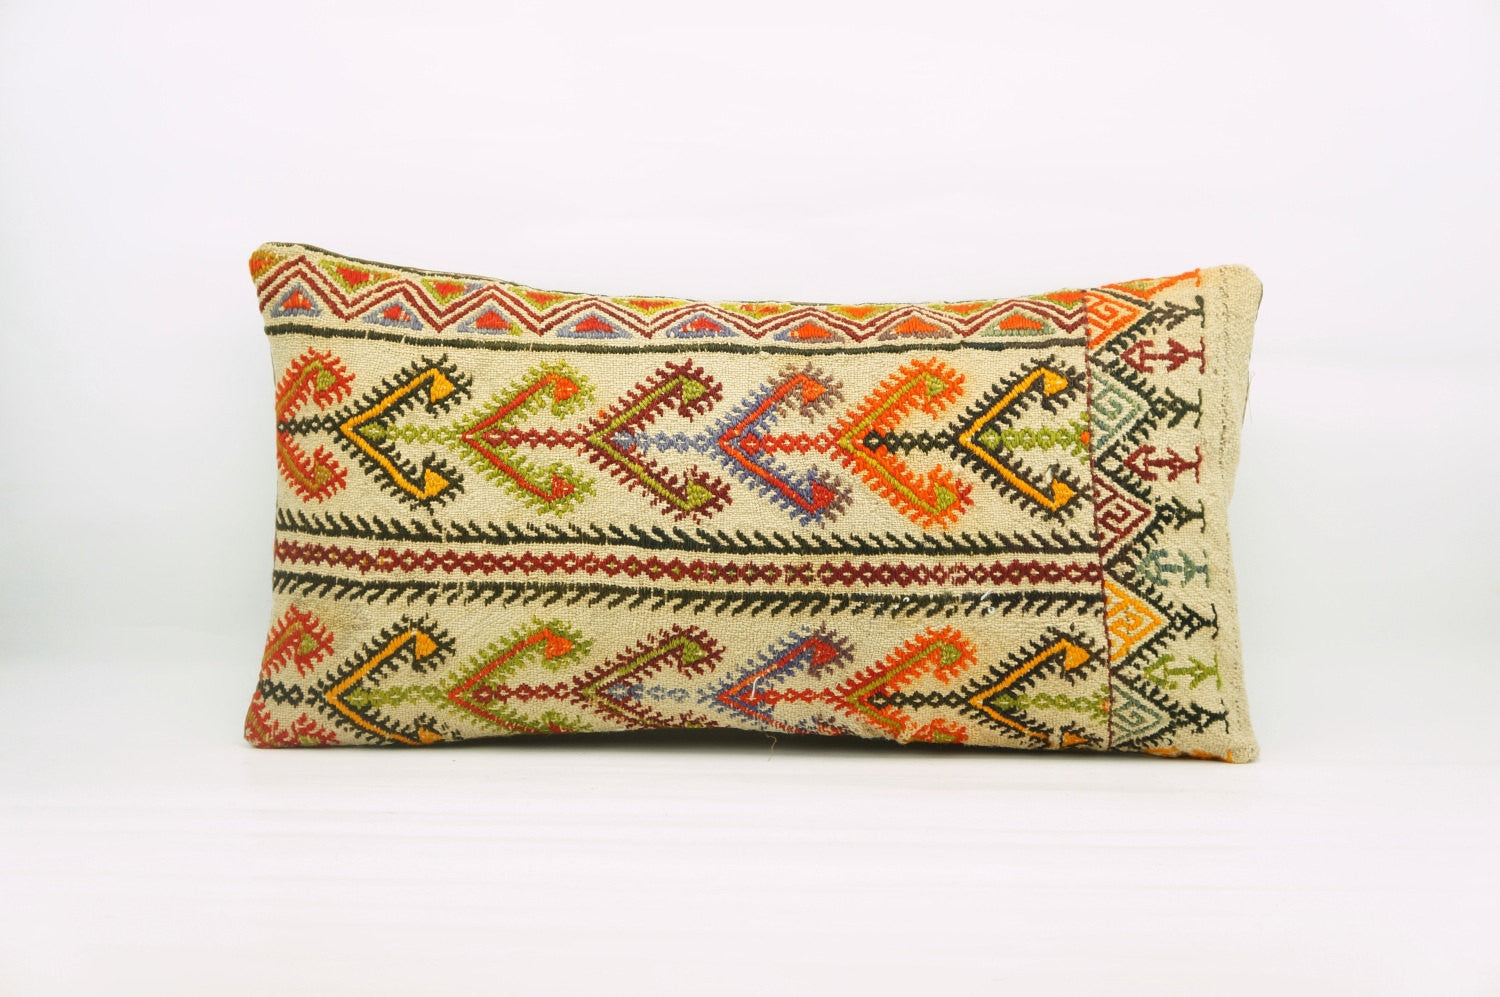 12x24  Geometric kilim pillow sham, Tribal cushion cover, Handwoven pillowcase , mid century decor multi colour 1214